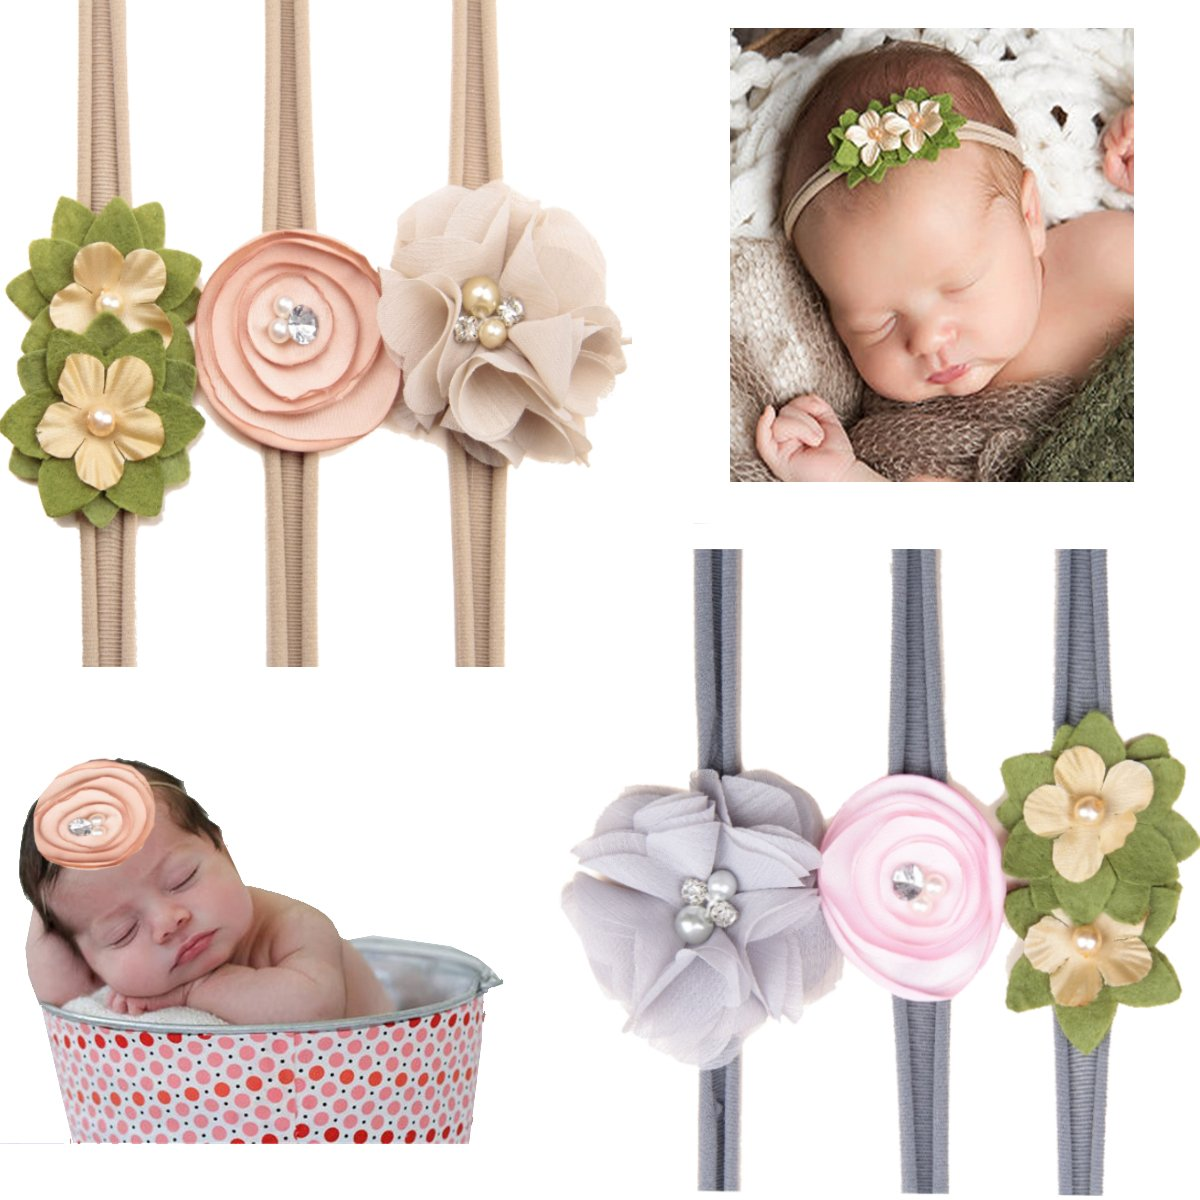 Girl's Accessories Girl's Hair Accessories Purposeful Your Bows 1 Pc Women Headband For Girls Fabric Bow Knot Hair Hoop Rabbit Ears Hairband Headwear Children Hair Accessories Reasonable Price